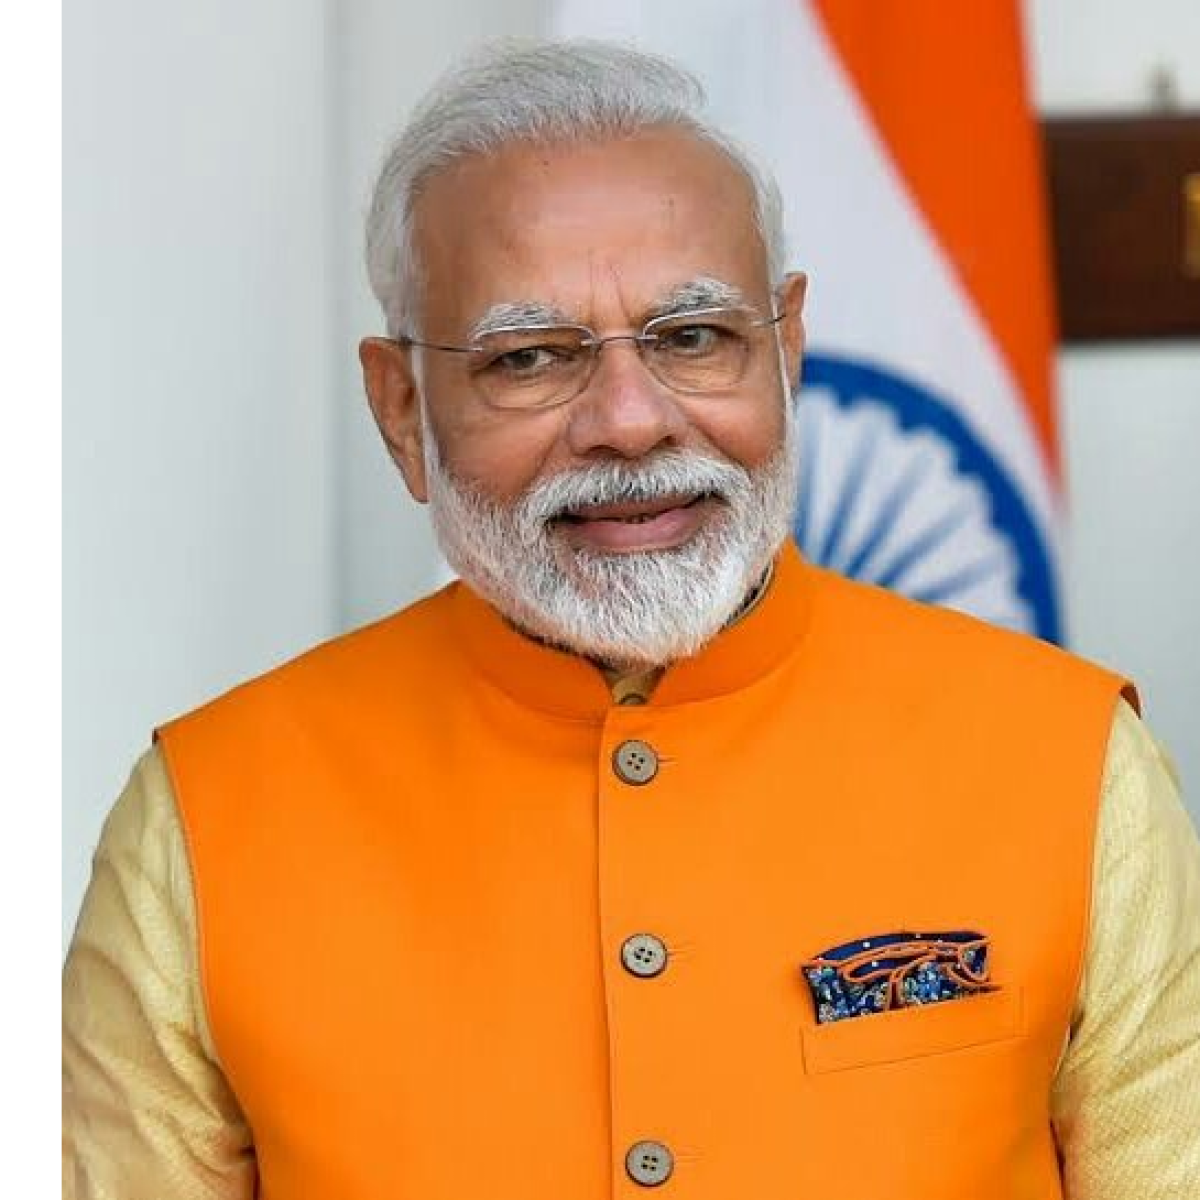 Students to study in 2022 under new curriculum as envisaged by NEP: PM  Narendra Modi